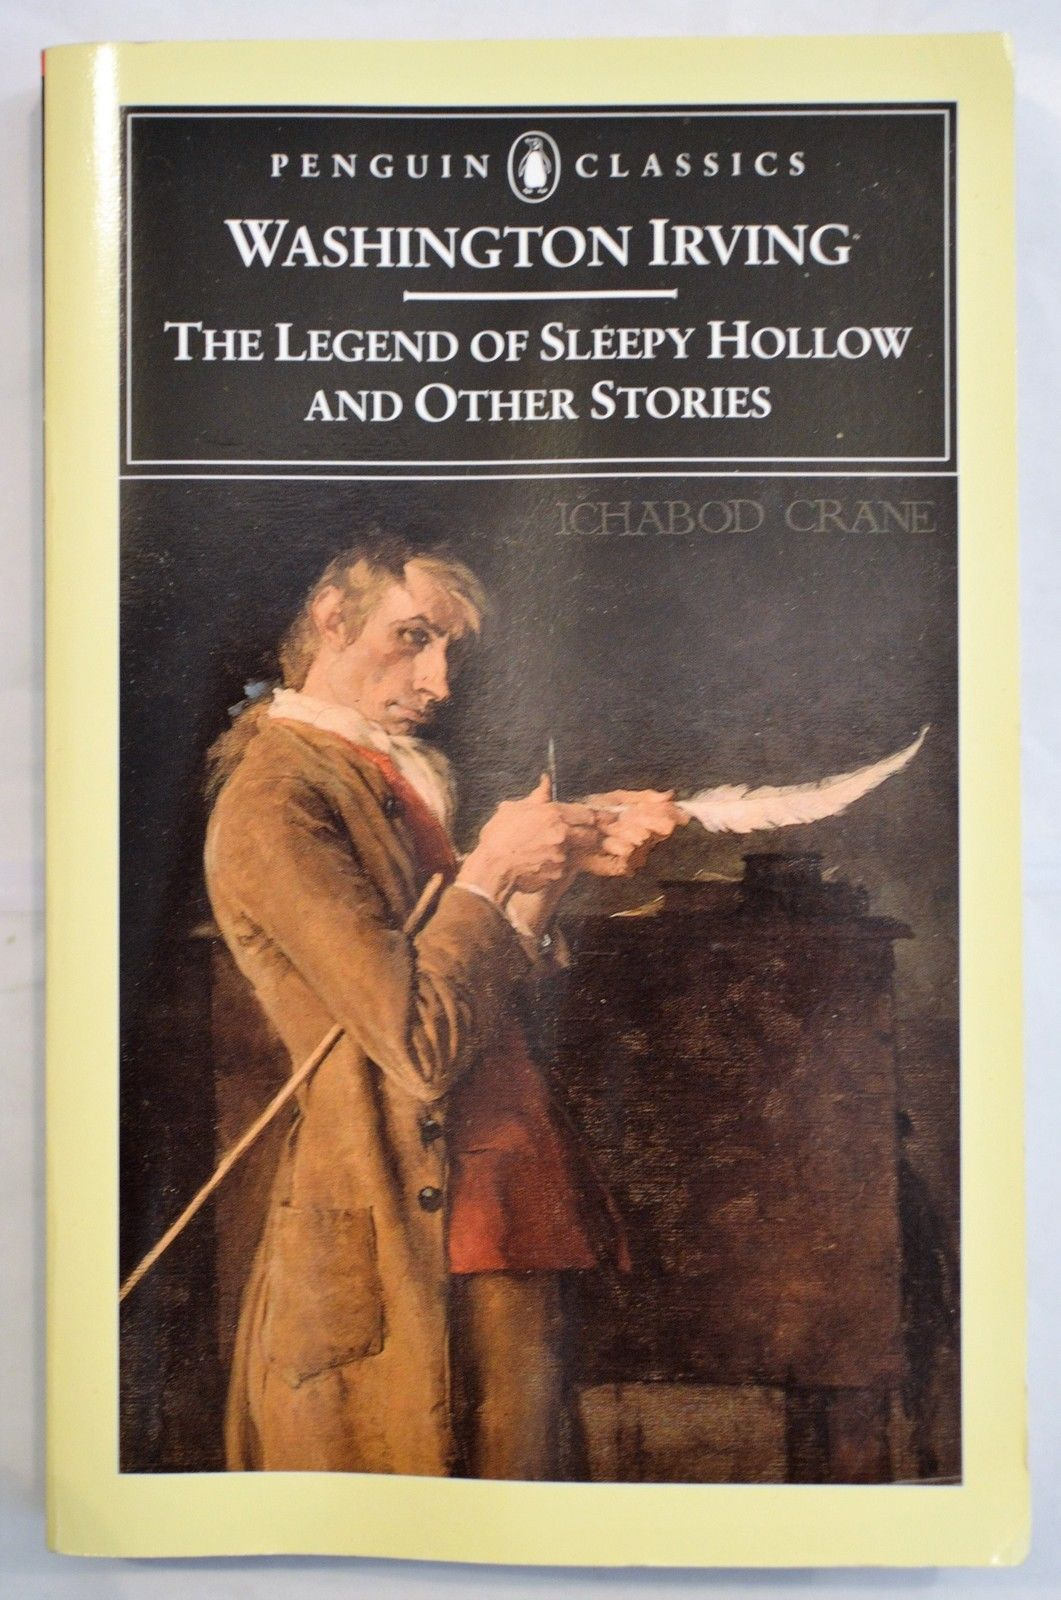 the american ideal in the legend of sleepy hollow a short story by washington irving and a film by t For a truly authentic experience, read washington irving's spooky short story, the legend of sleepy hollow, while sitting under a tree in the original sleepy hollow cemetery.